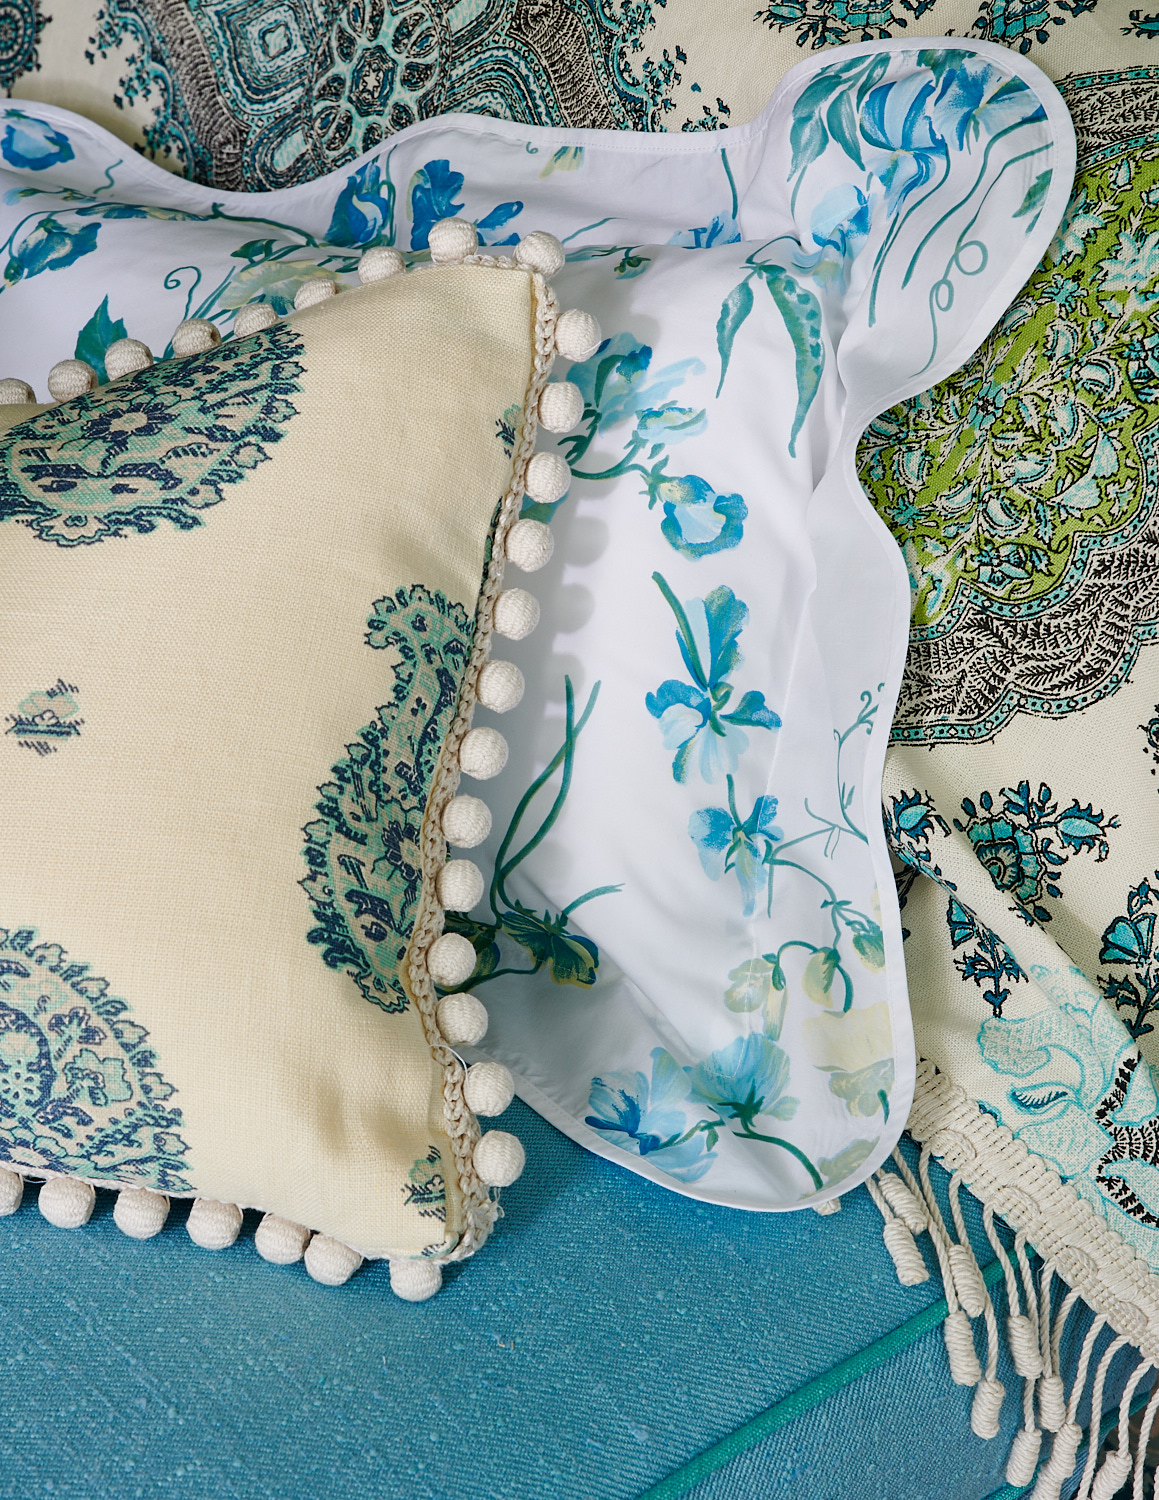 Custom pillows with orb tassels, and floral shams pillows